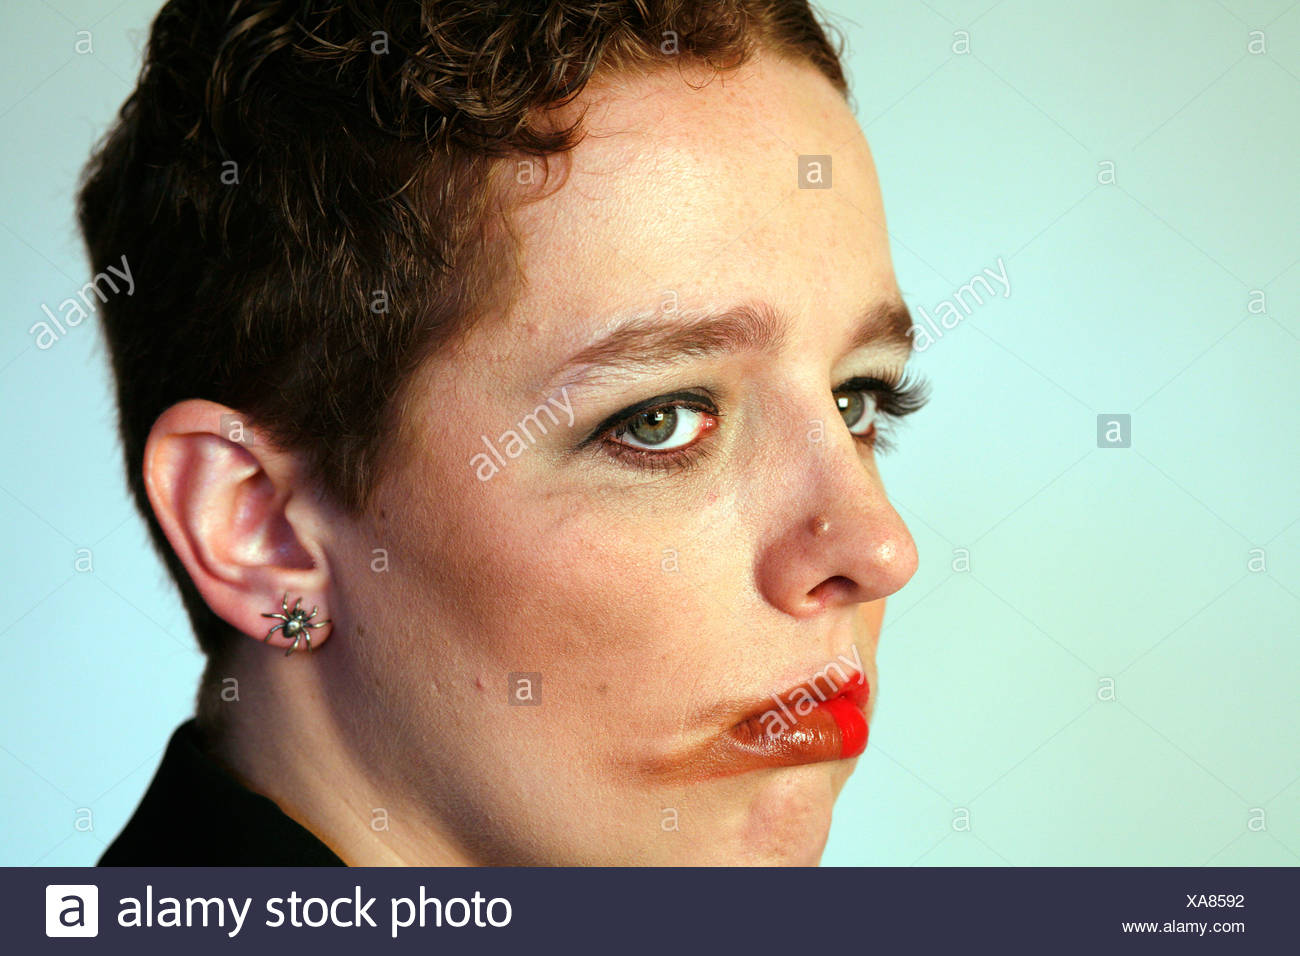 Face with smudged make-up - Stock Image